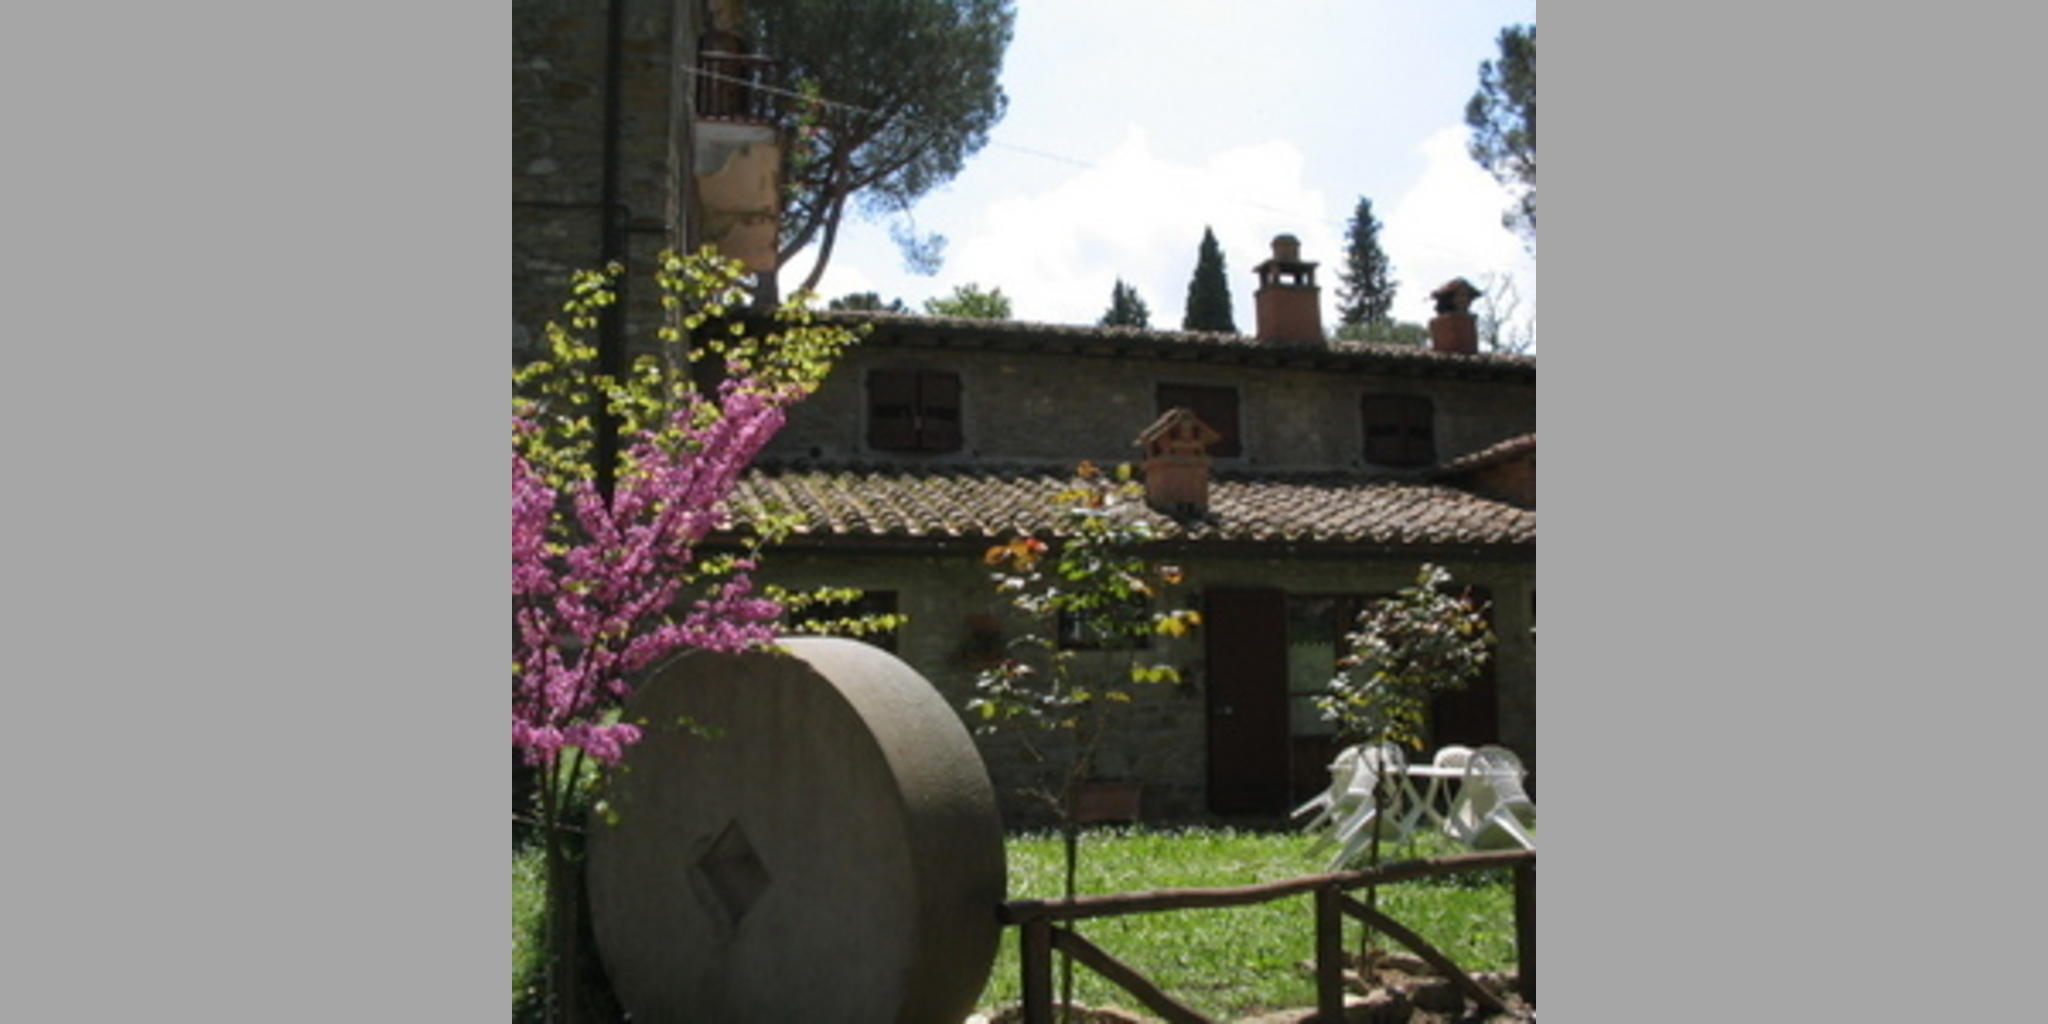 Farmhouse Cortona - Cortona  Scanizza